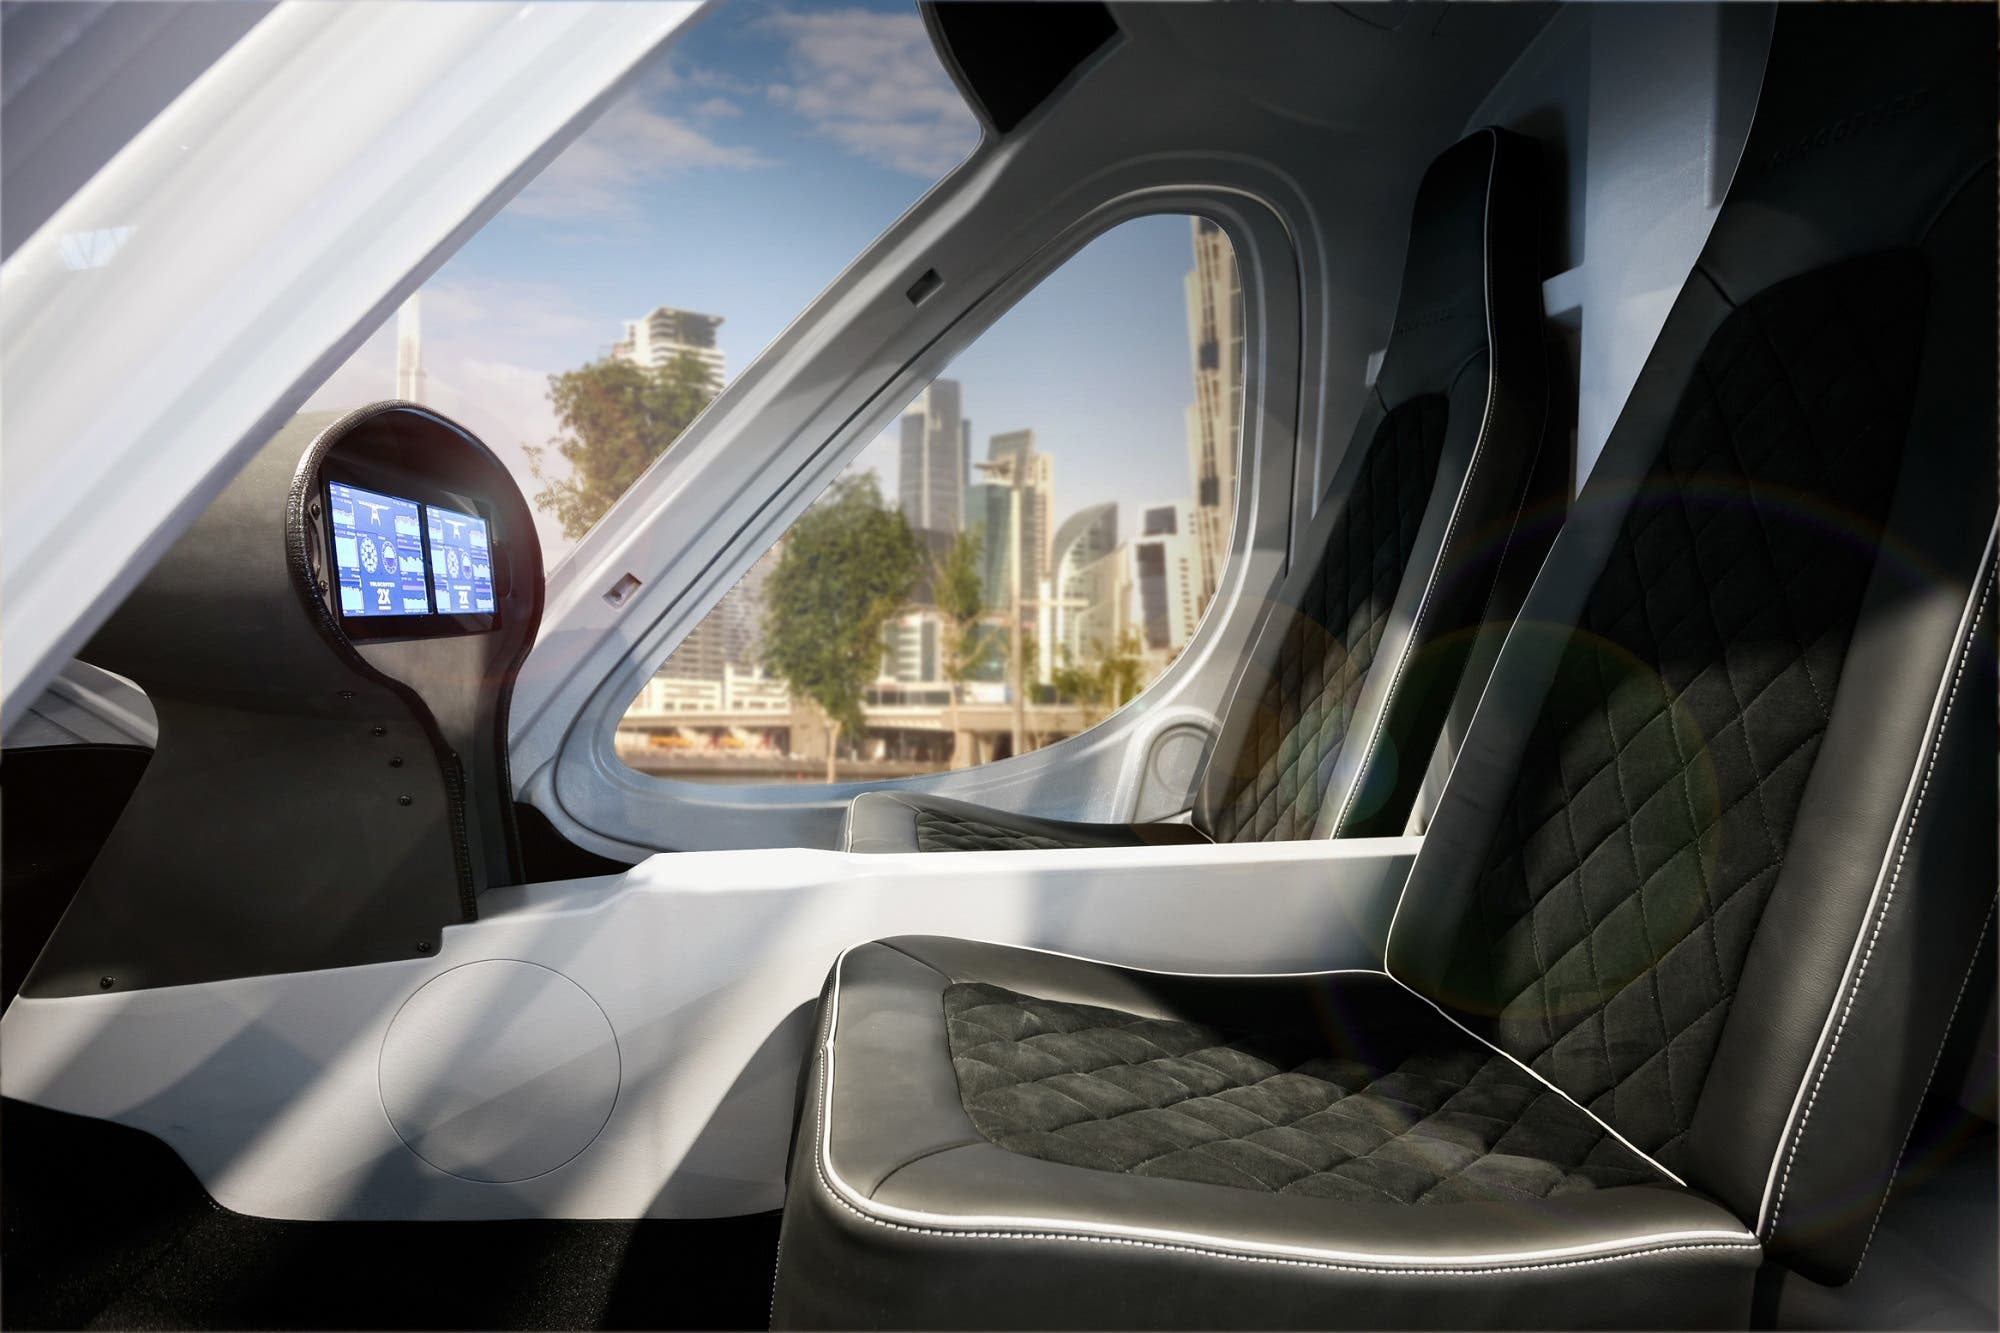 The Volocopter autonomous air taxi luxury interior. (Courtesy: Volocopter)